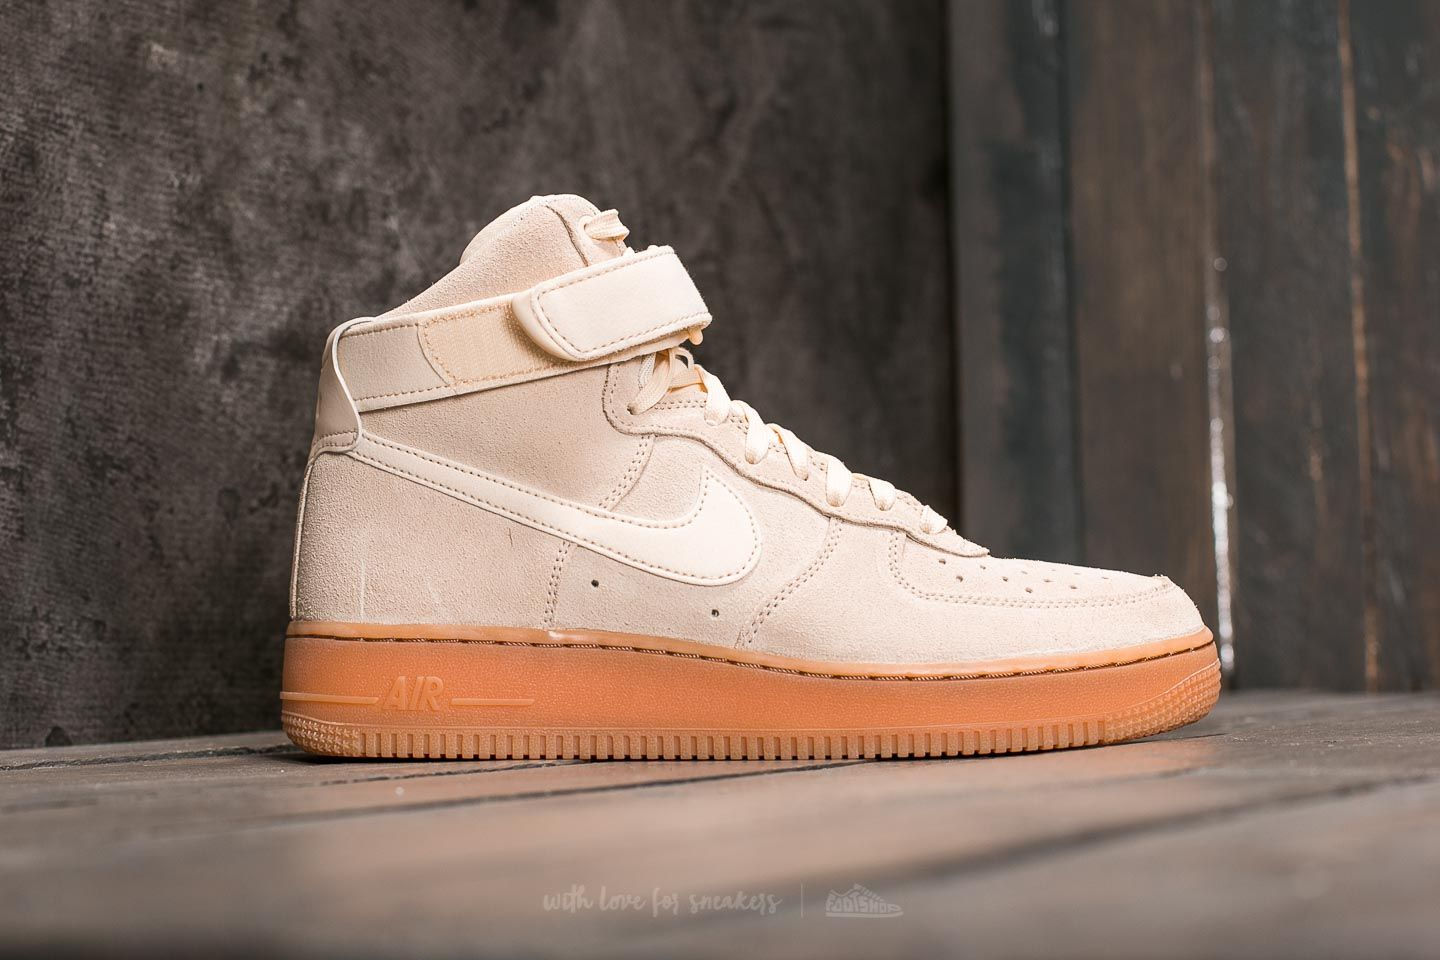 Nike Air Force 1 High ´07 LV8 Suede Muslin Muslin Gum Med Brown | Footshop